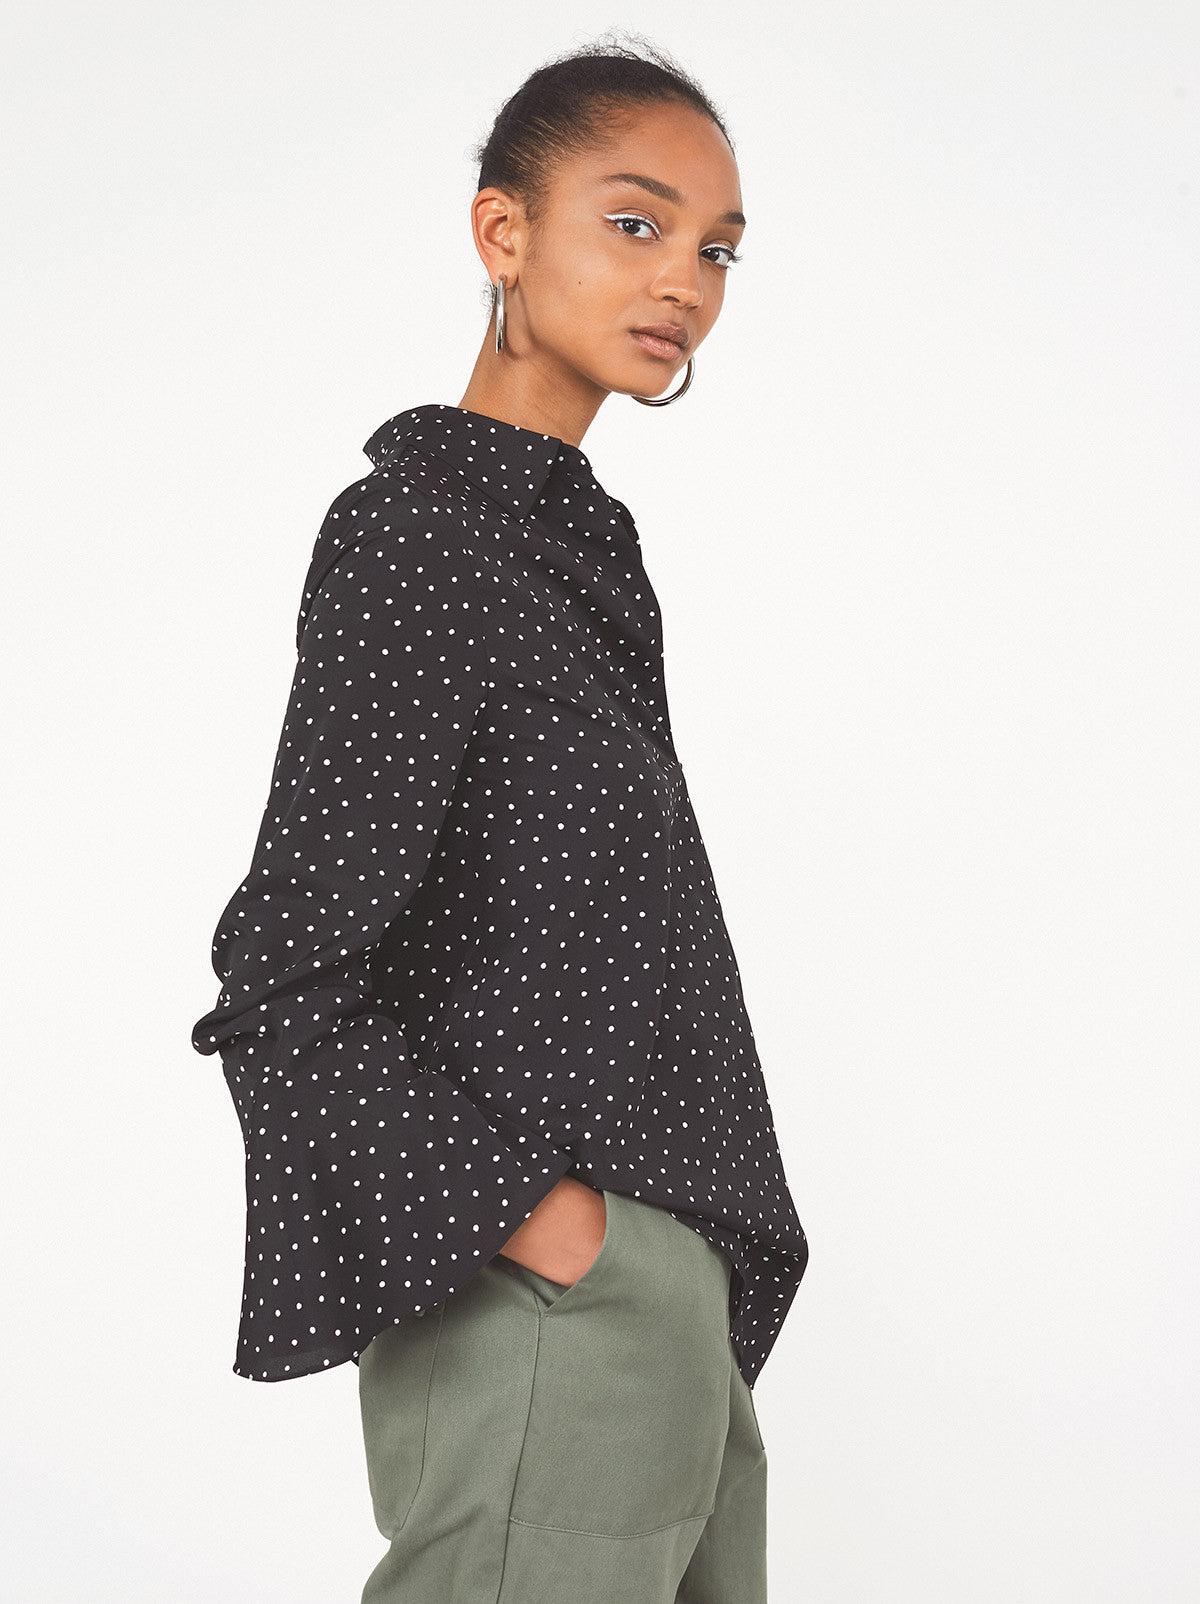 Acosta Black Polka Dot Ladies Blouse by KITRI Studio